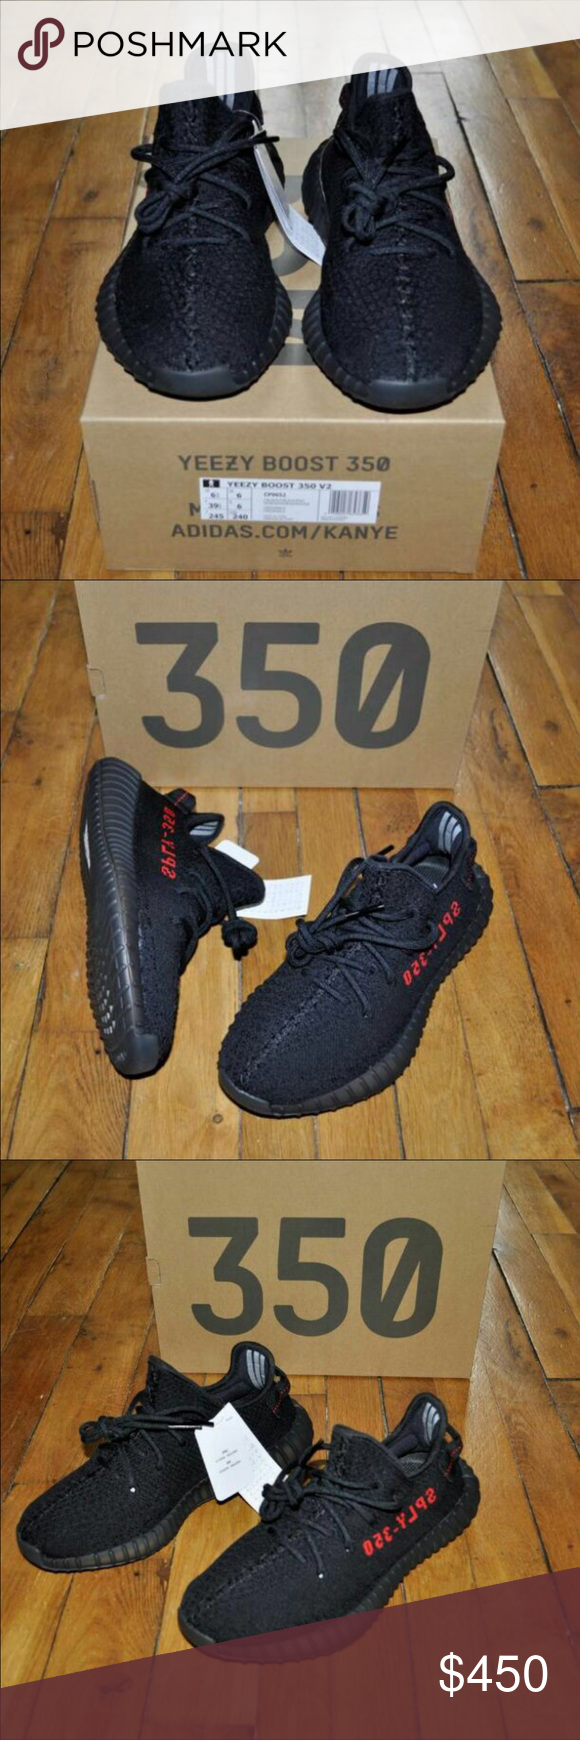 yeezy bred size 6 adidas originals Yeezy Boost 350 V2 CP9652 accepting  offers Yeezy Shoes Sneakers 8424400ee